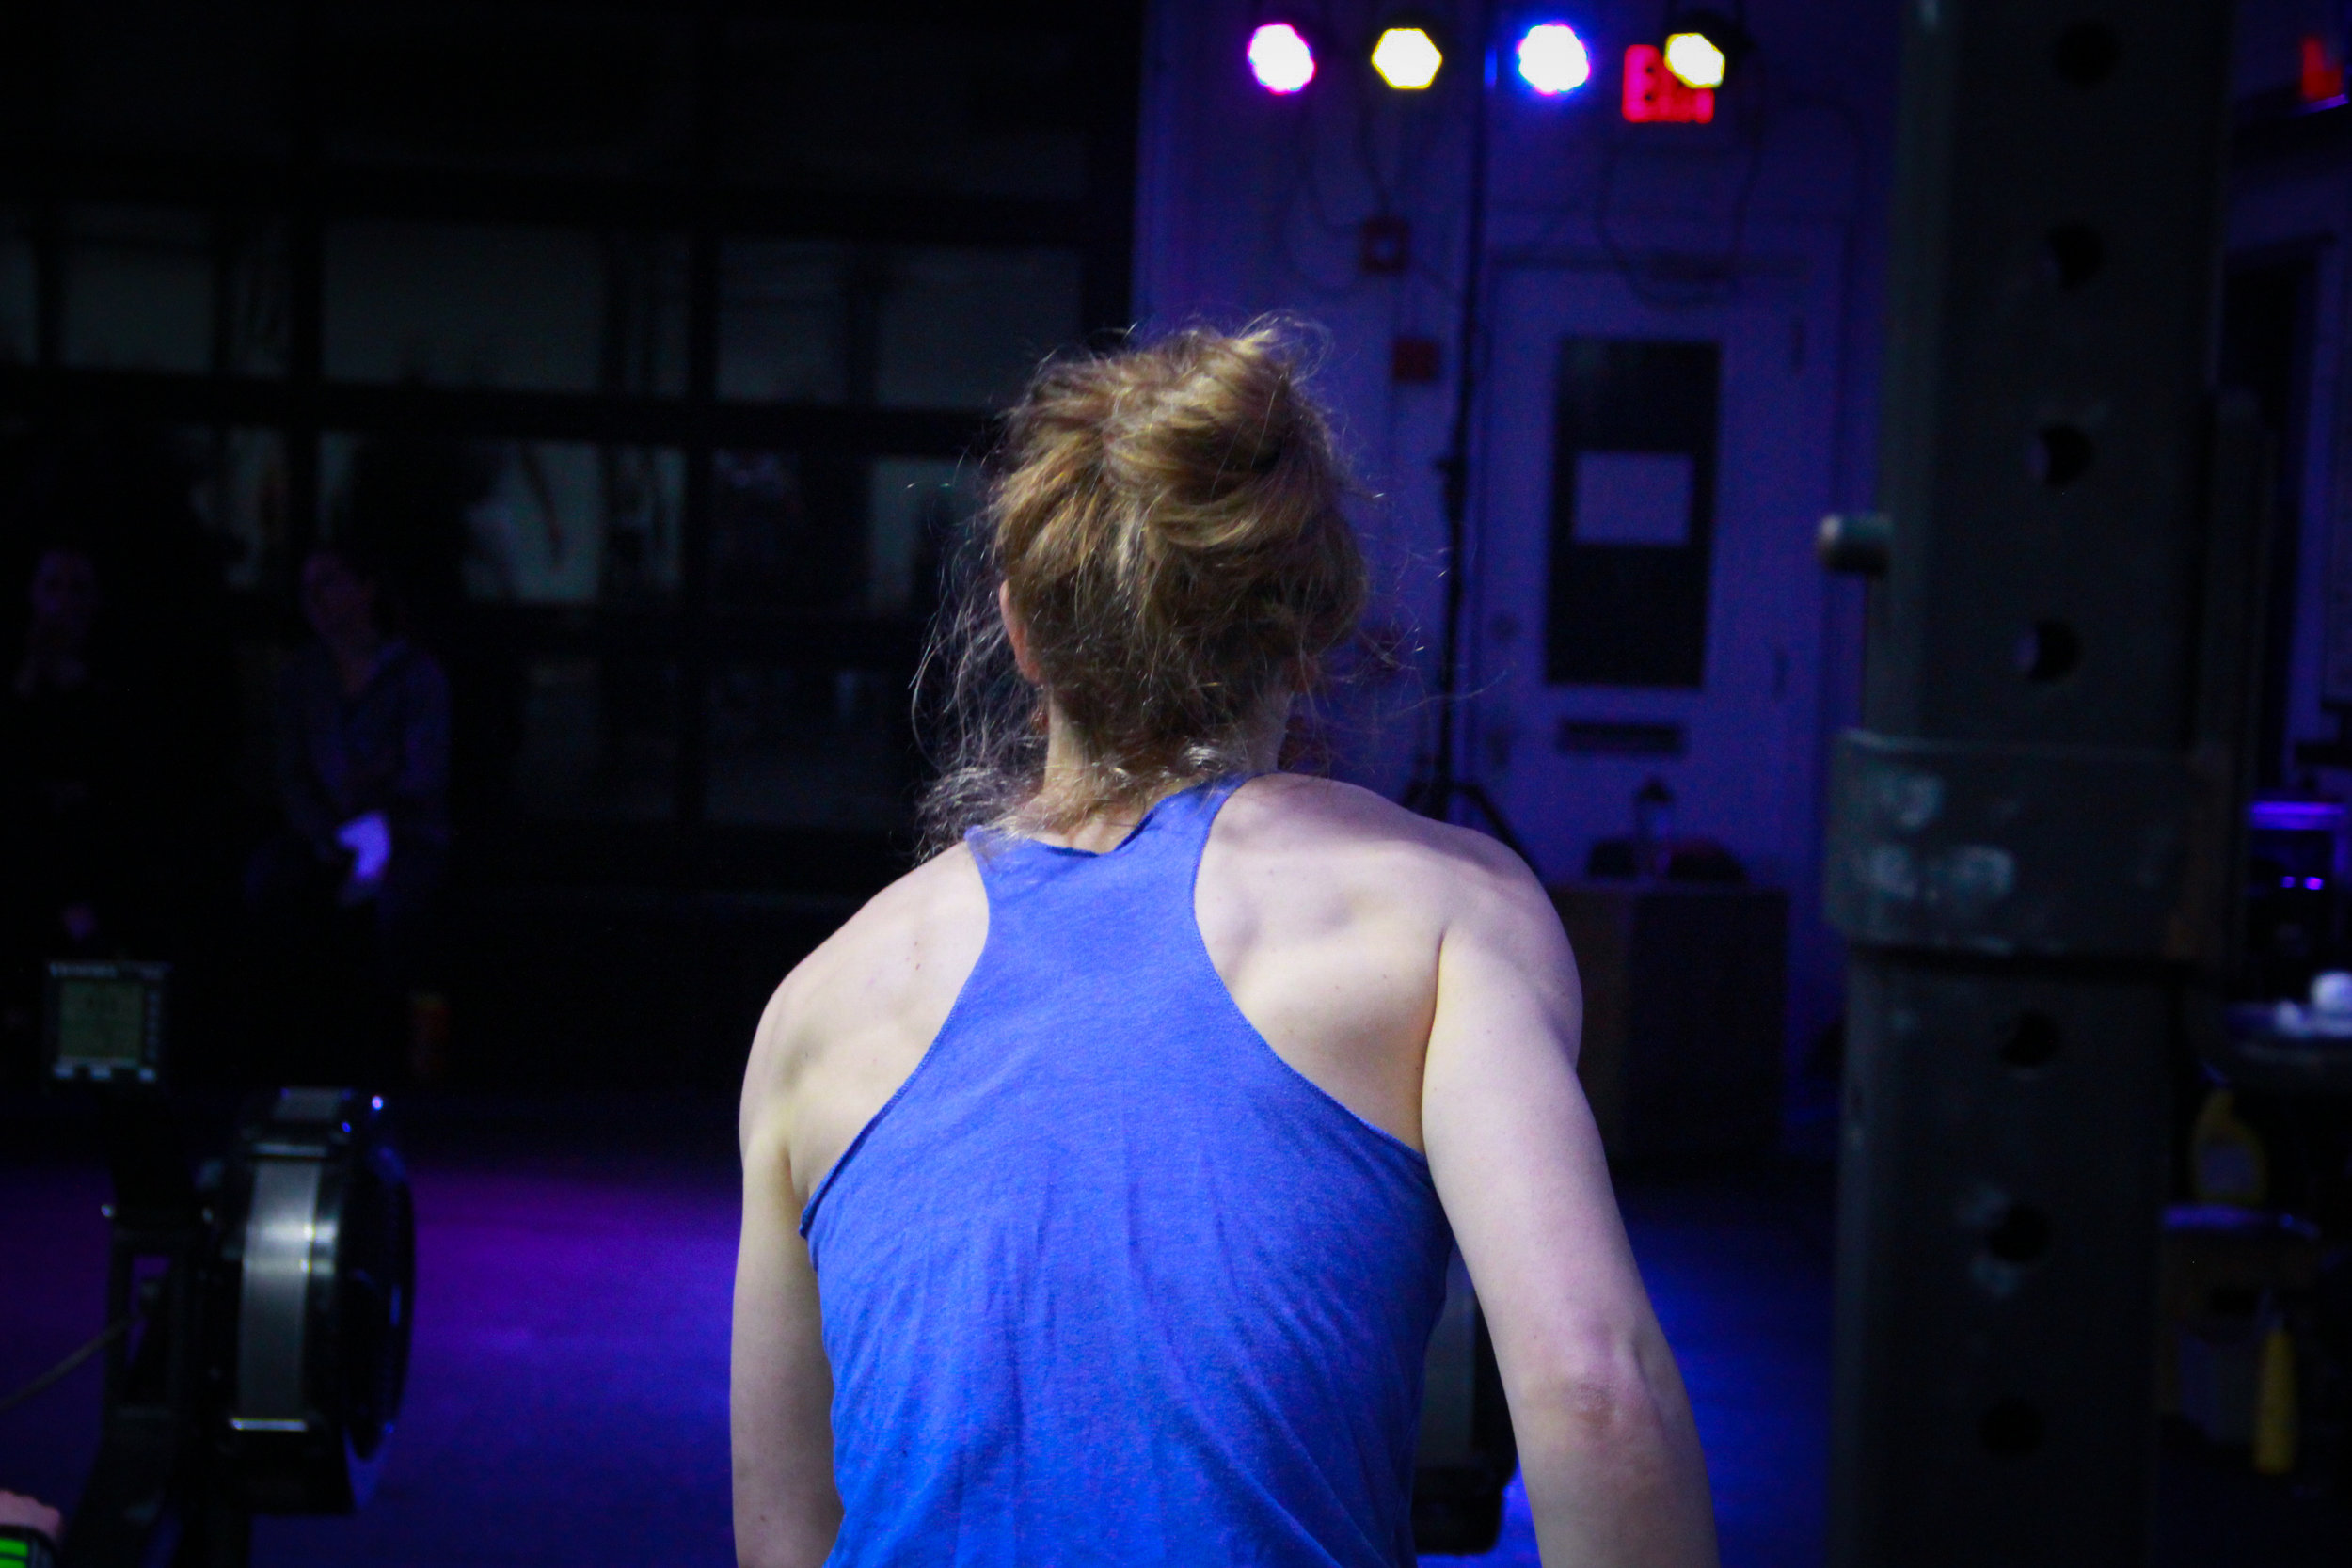 PVCF athlete, Katie Byrne goes for blue on blue success!